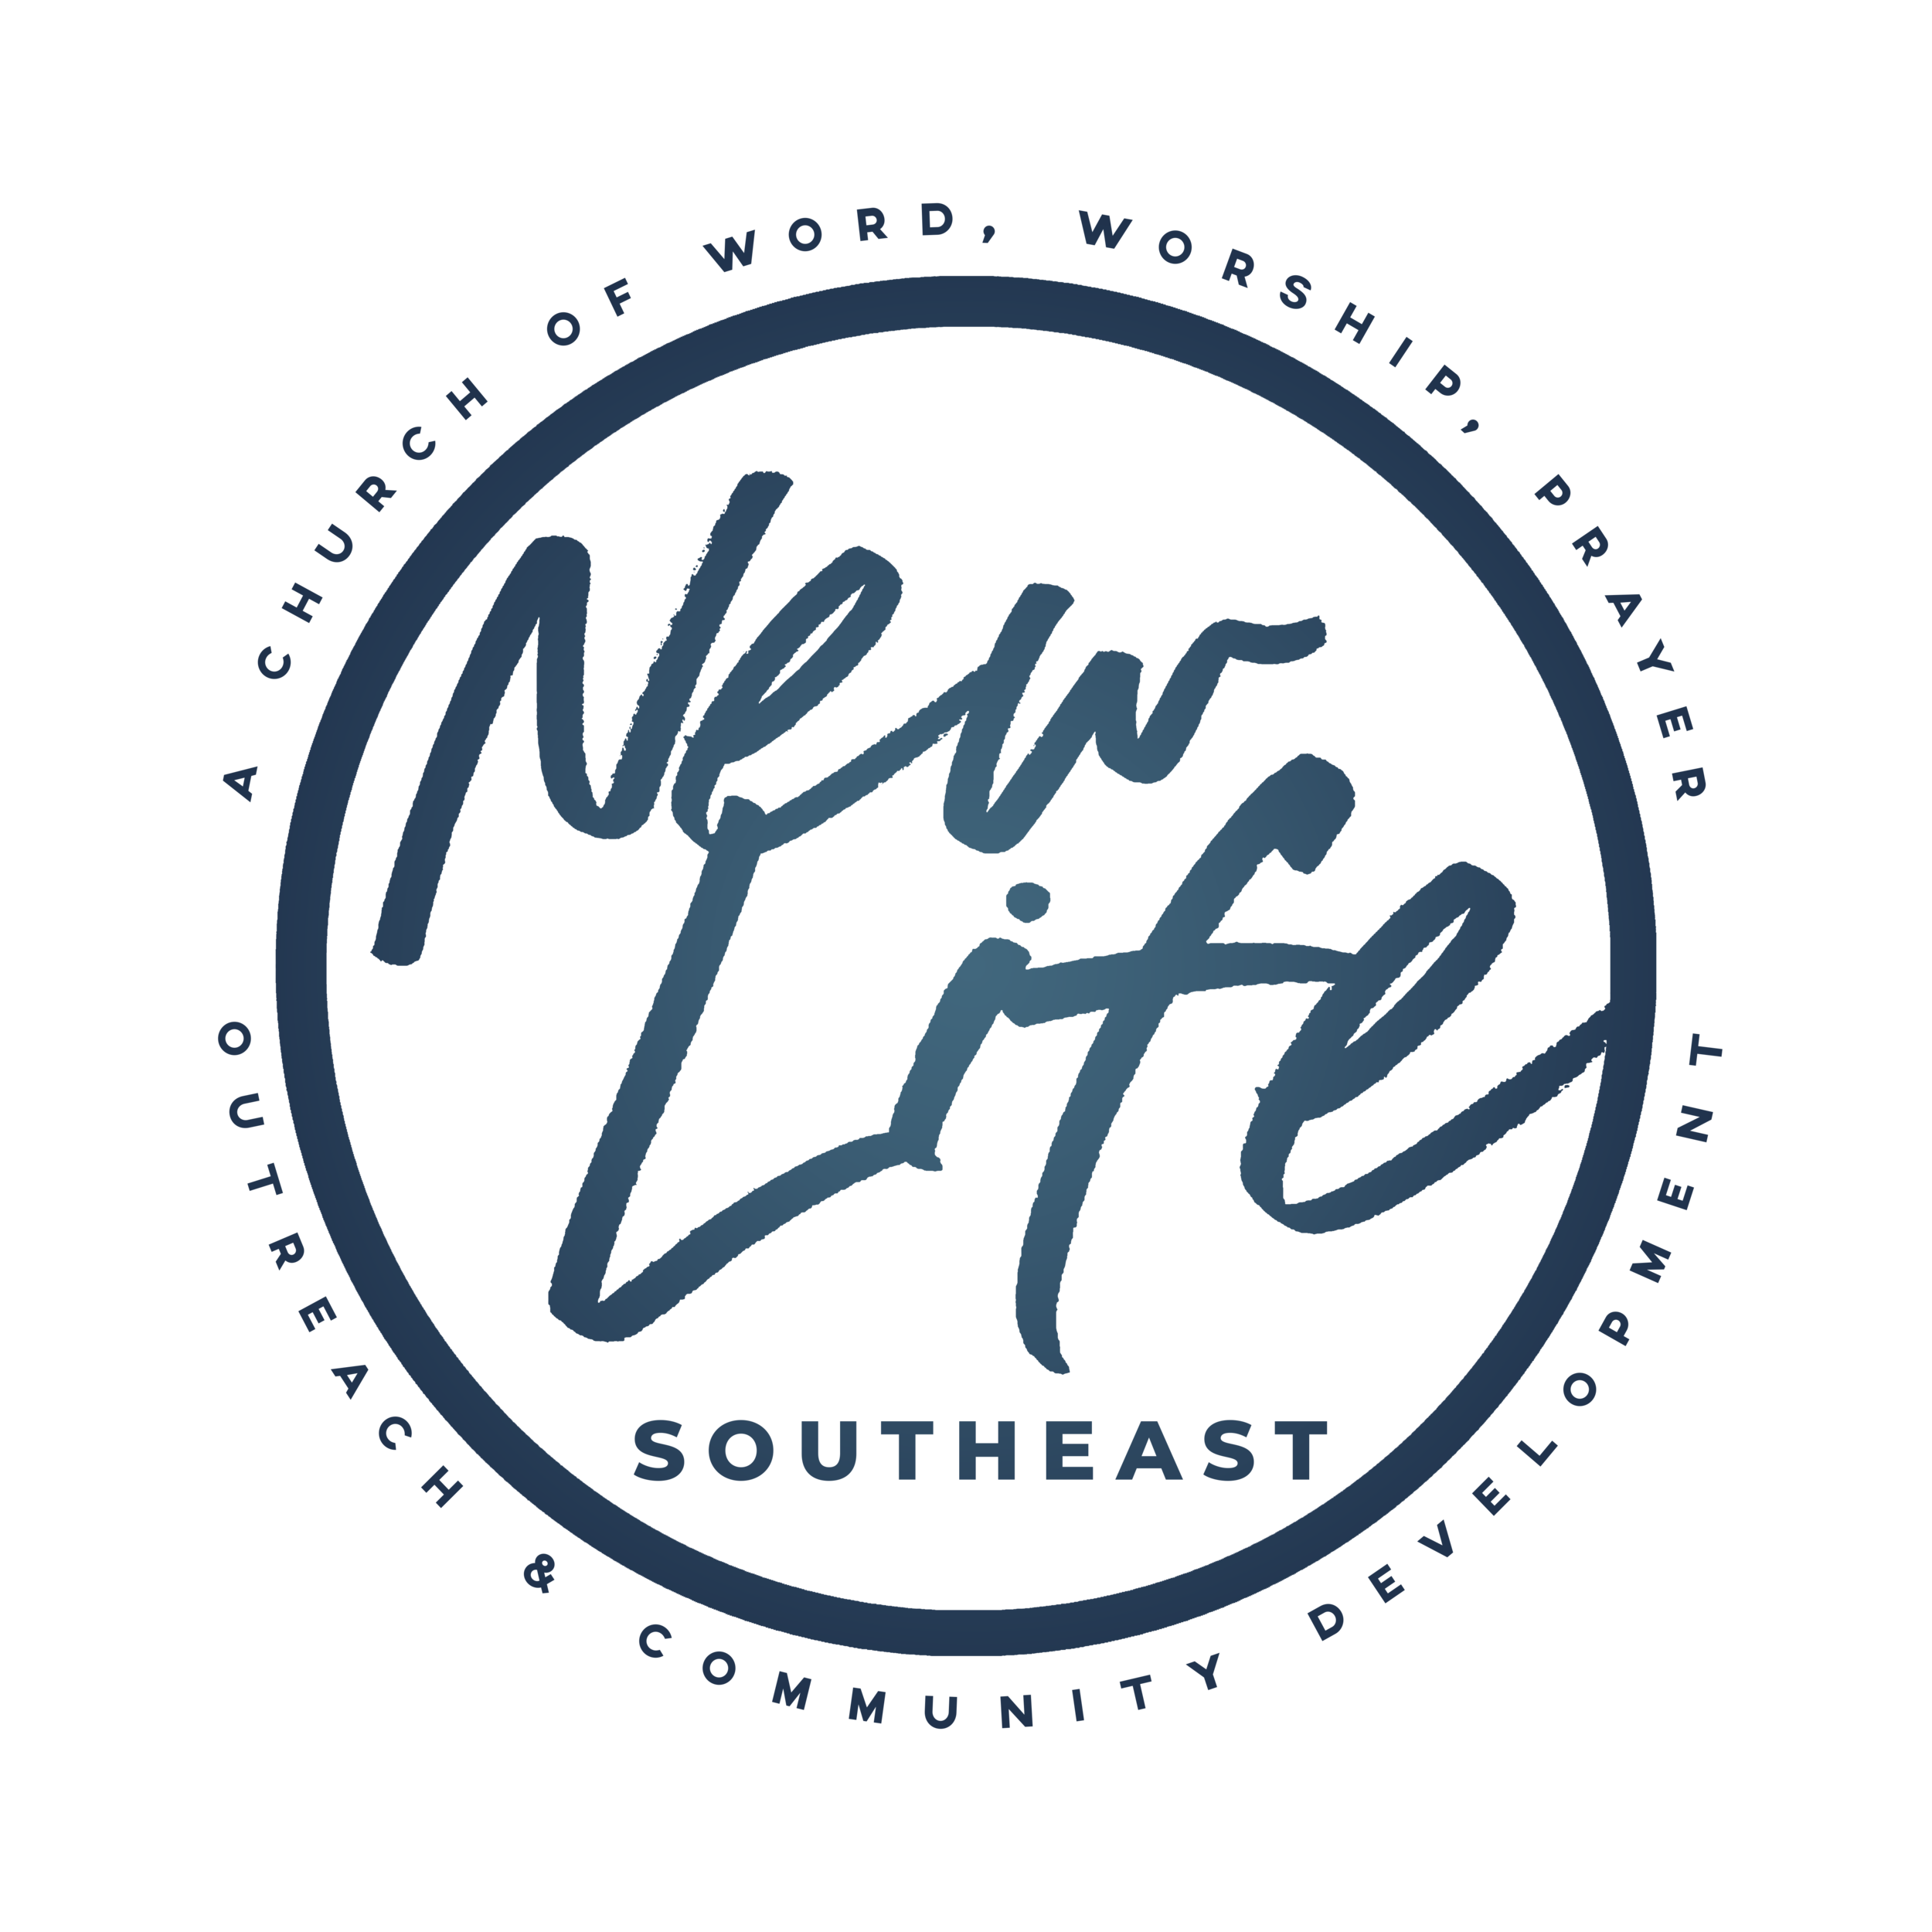 New Life Southeast Stamp with Pillars (Navy Gradient) (1).png